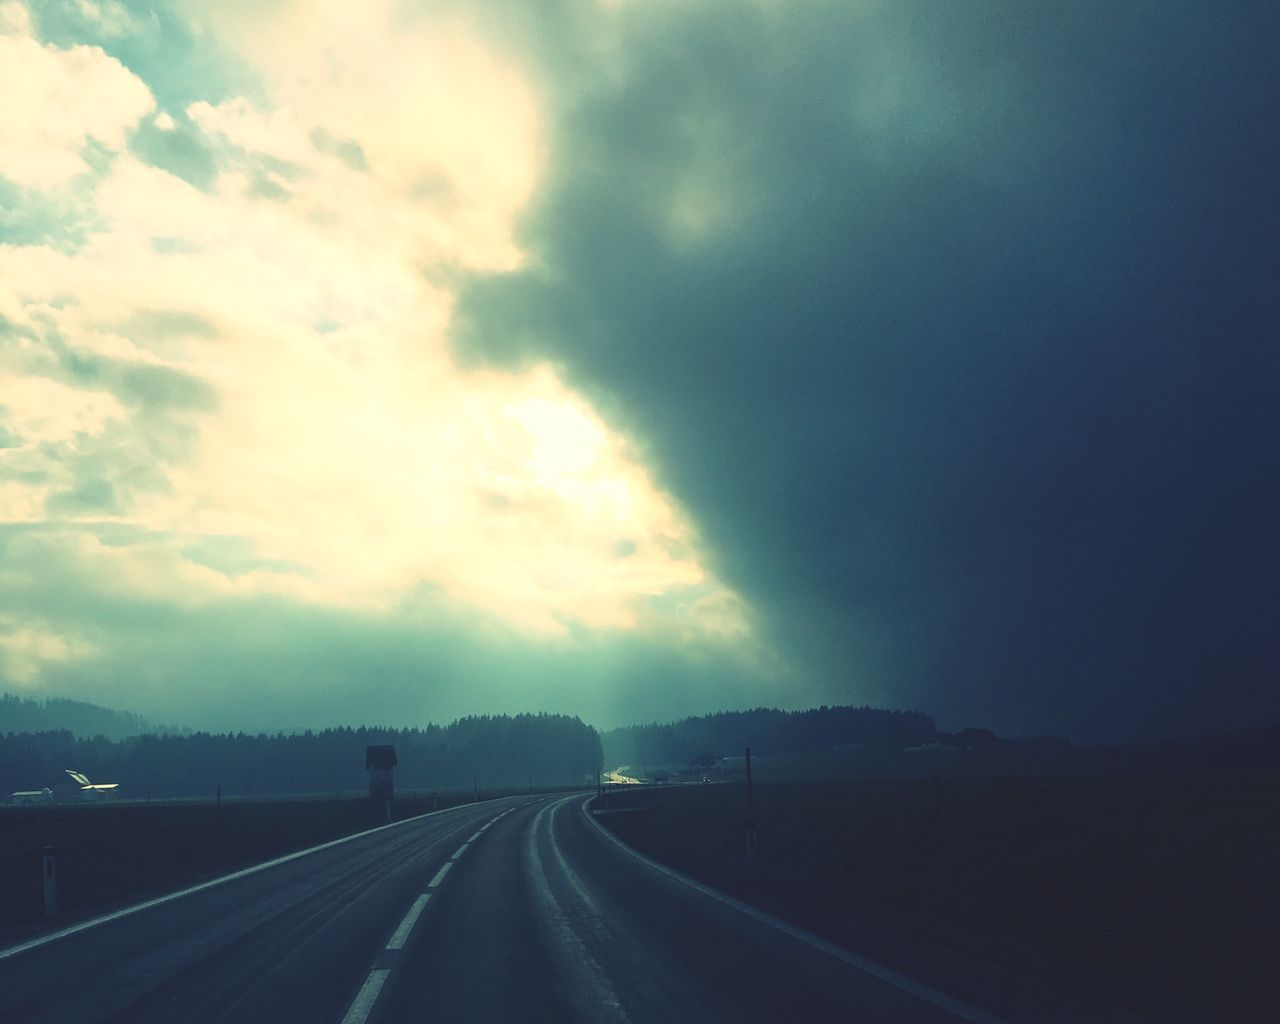 transportation, road, cloud - sky, sky, the way forward, direction, no people, symbol, diminishing perspective, nature, sign, marking, highway, road marking, beauty in nature, car, non-urban scene, vanishing point, tranquility, outdoors, dividing line